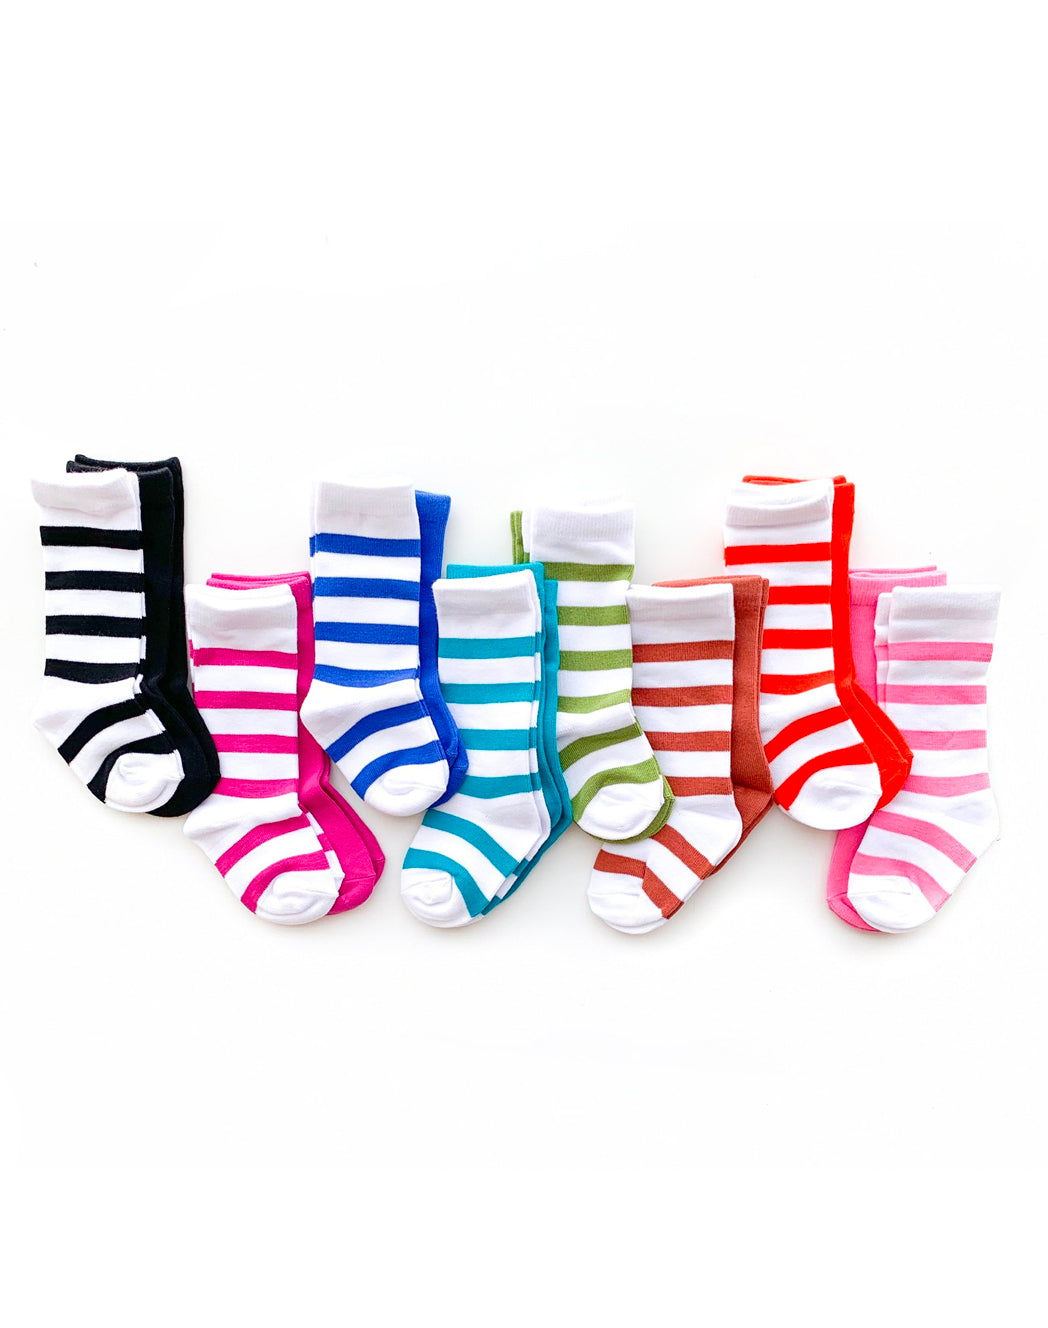 FULL LINE UP OF TALL SOCKS SHOWN ON A WHITE BACKGROUND